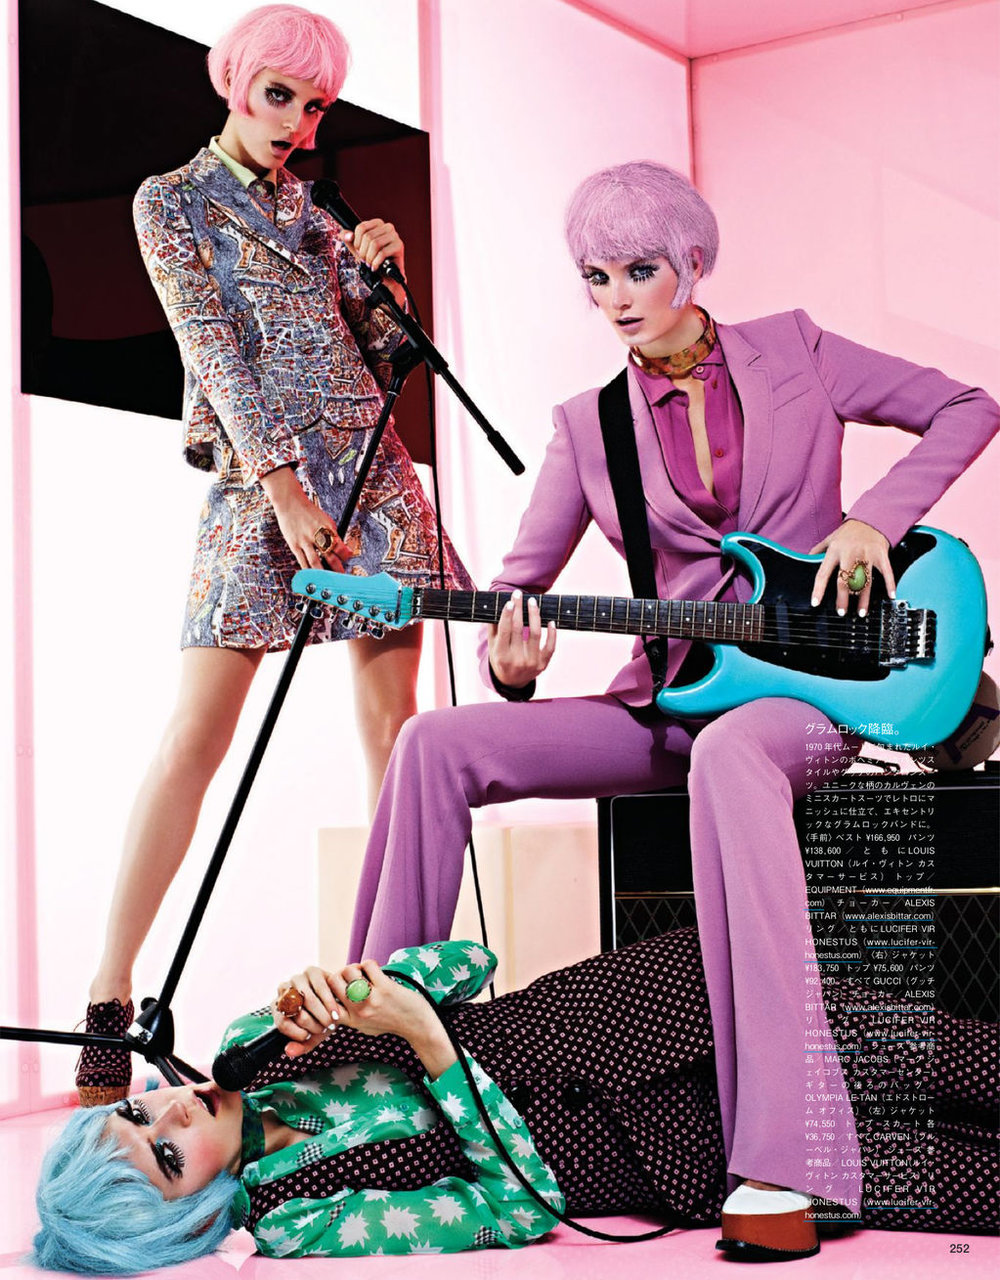 Giovanna-Battaglia-7-Girls-in-the-Band-Vogue-Japan-Sharif-Hamza.jpg